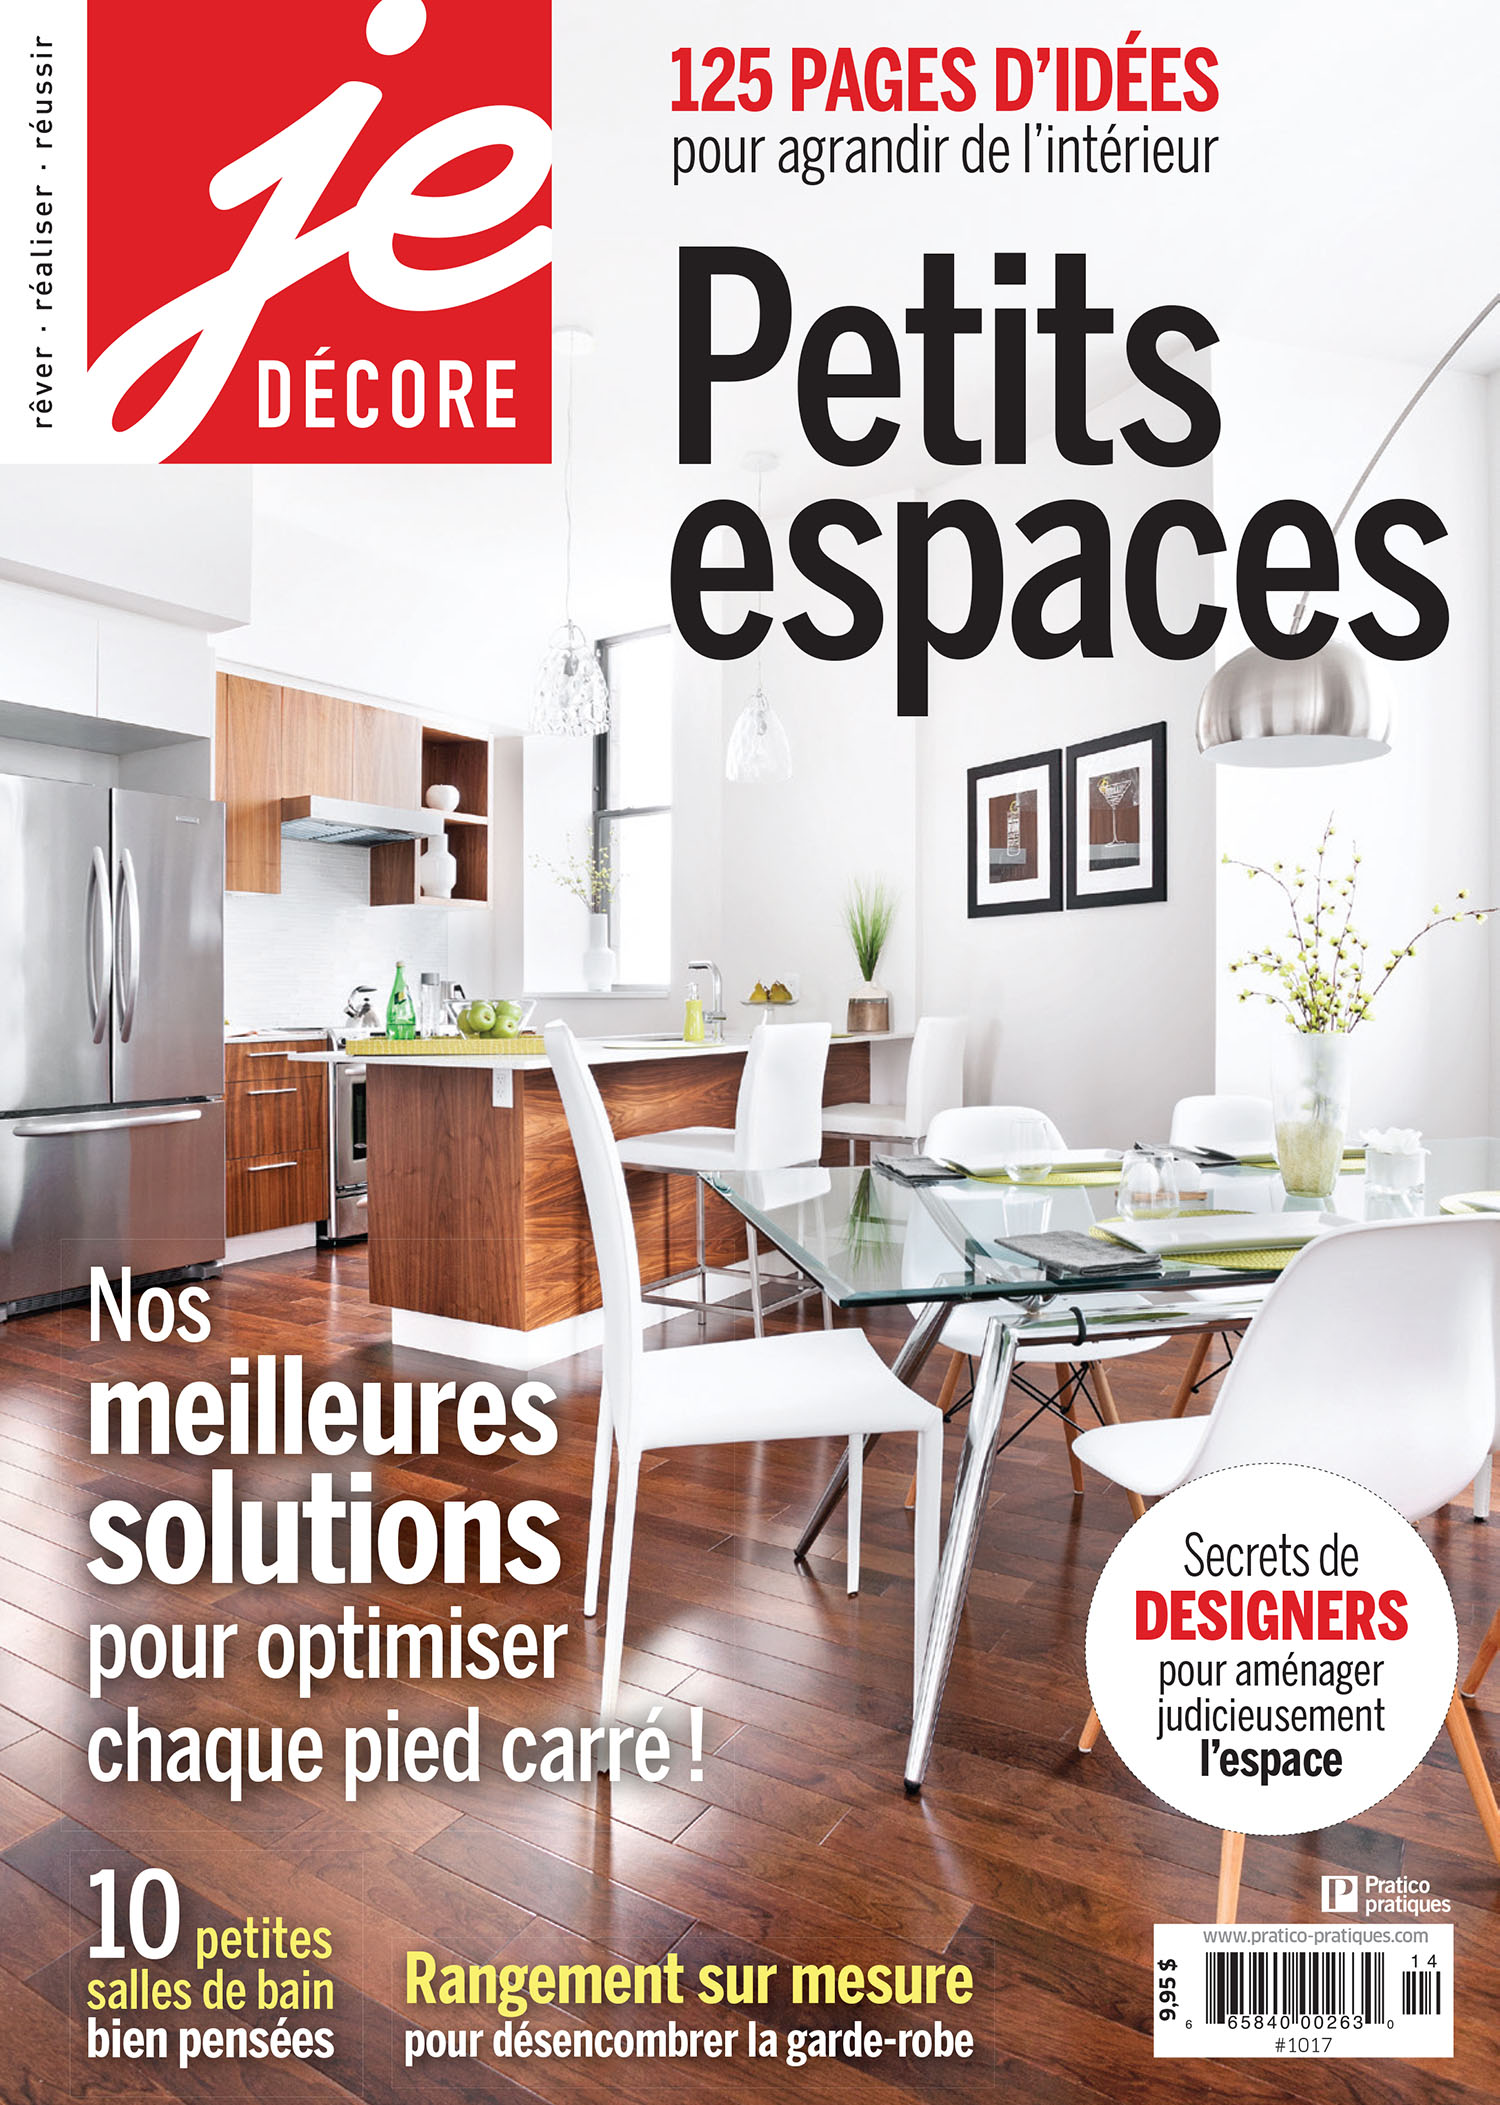 Petits espaces Front PageD1017_C1_.jpg